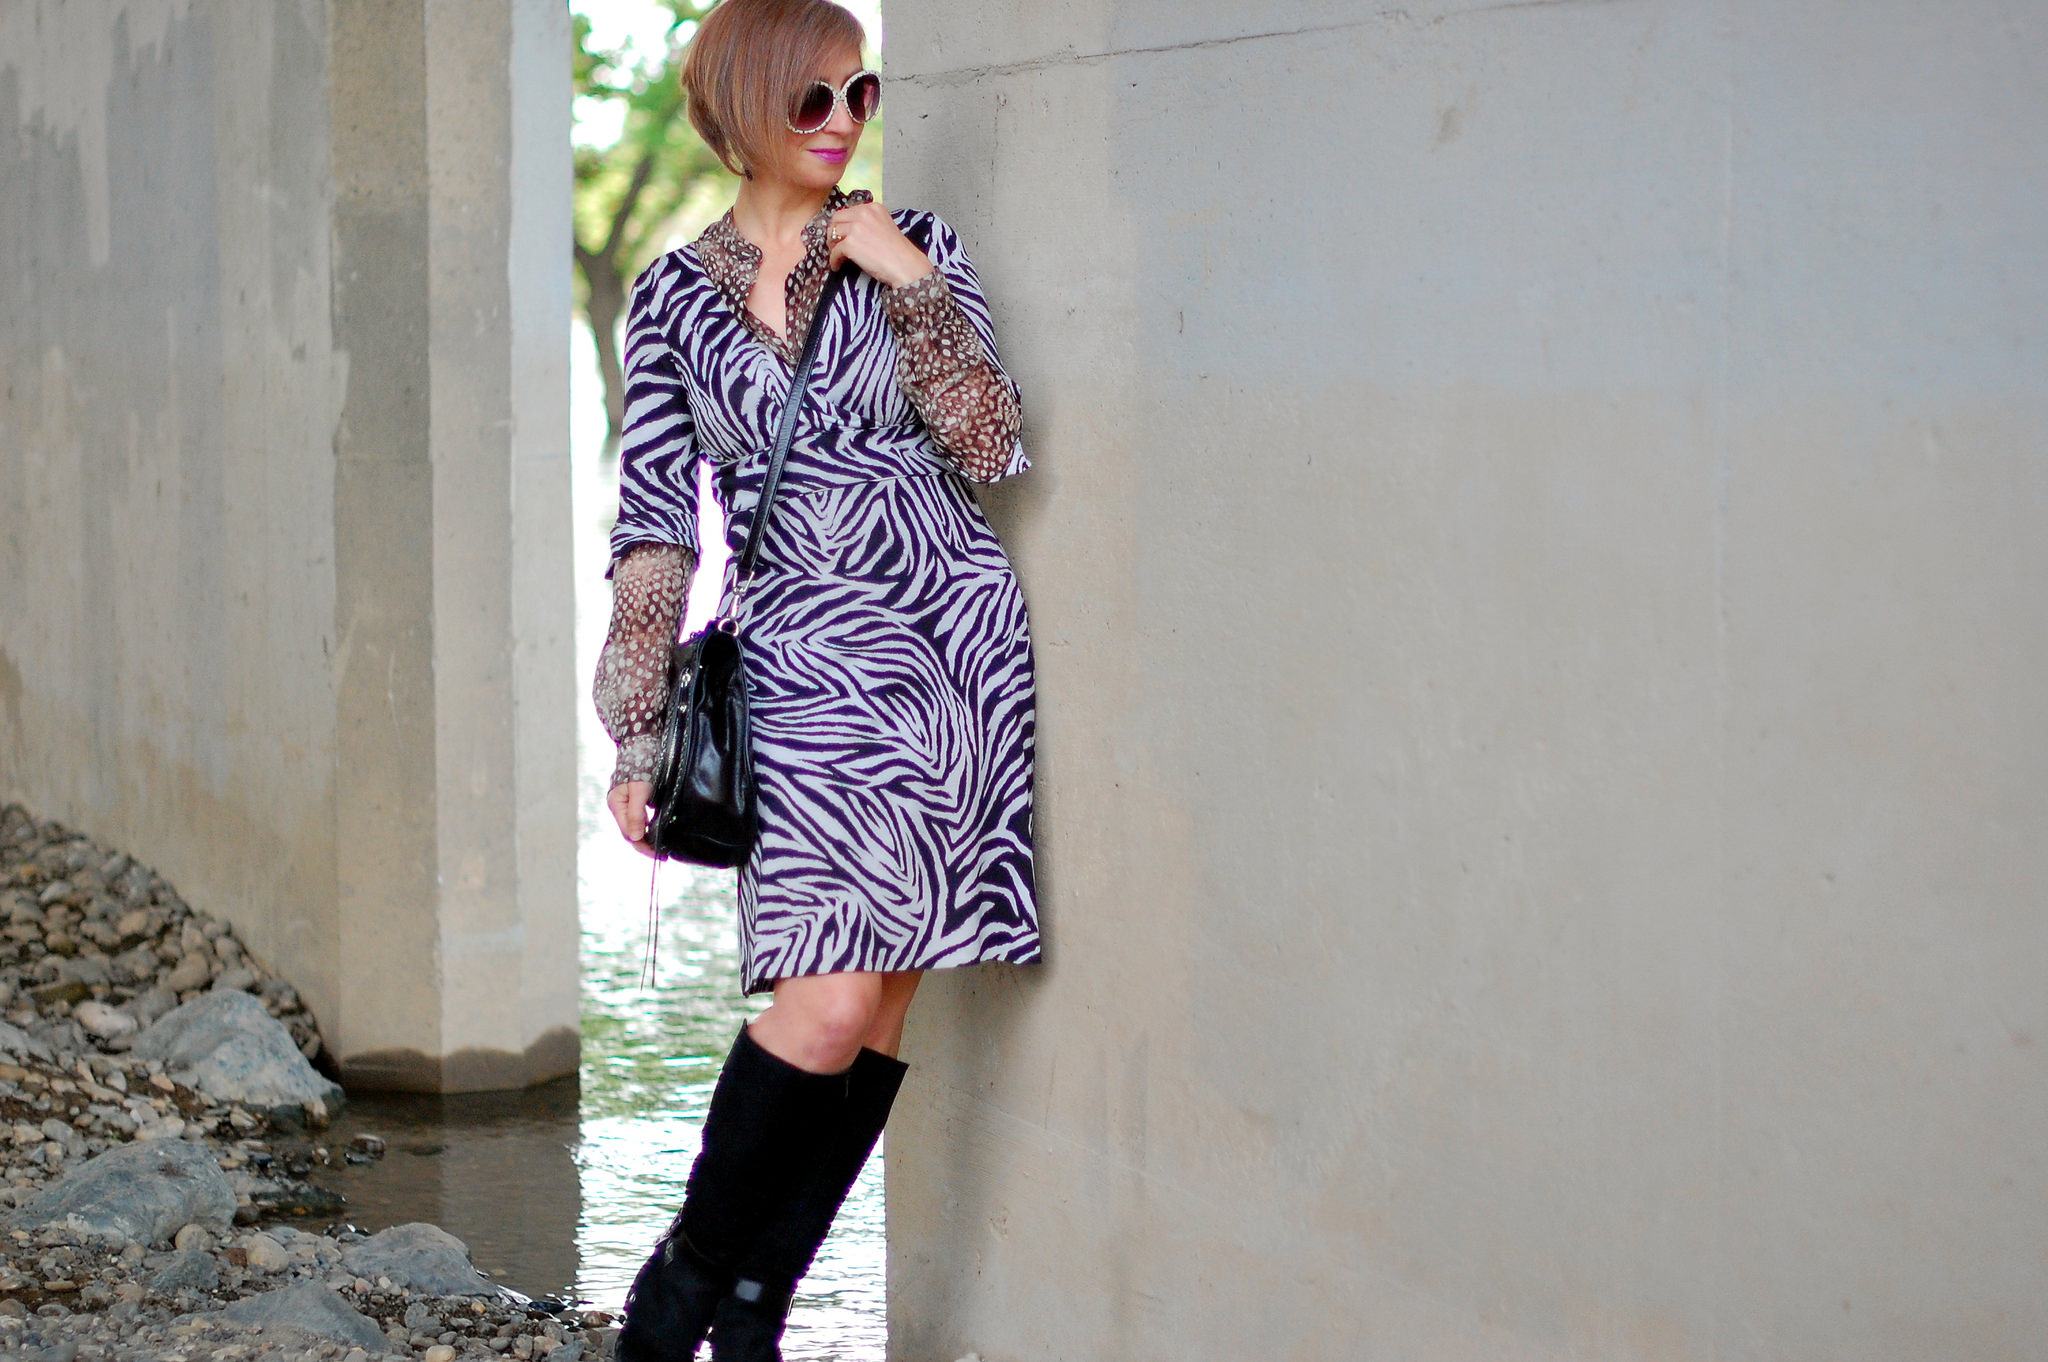 zebra tiger leopard shirt under dress ootd outfit substitute teacher